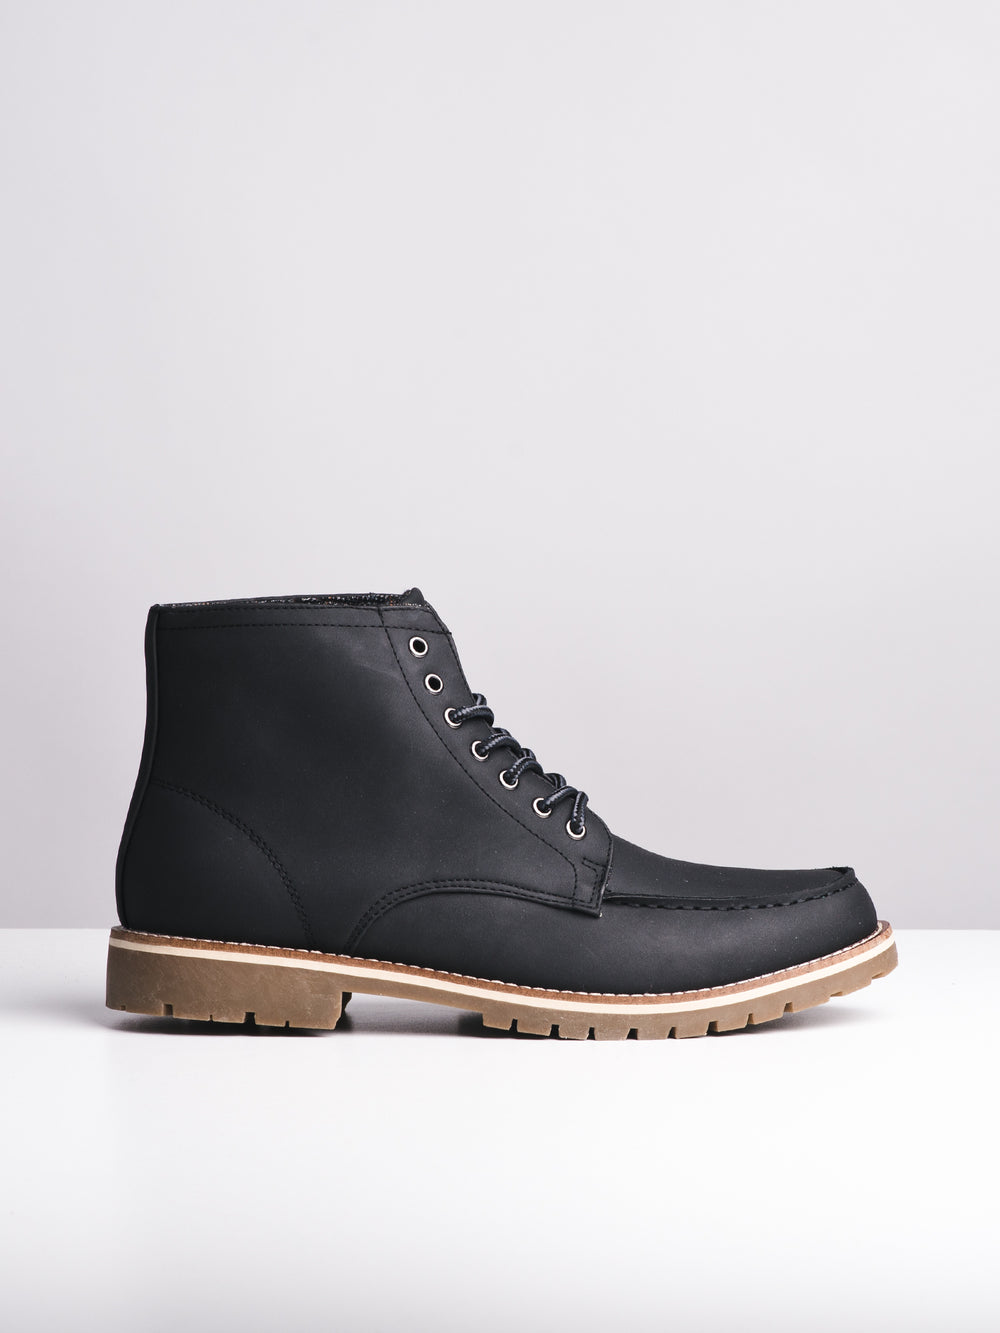 MENS EVAN - BLACK-D4 - CLEARANCE